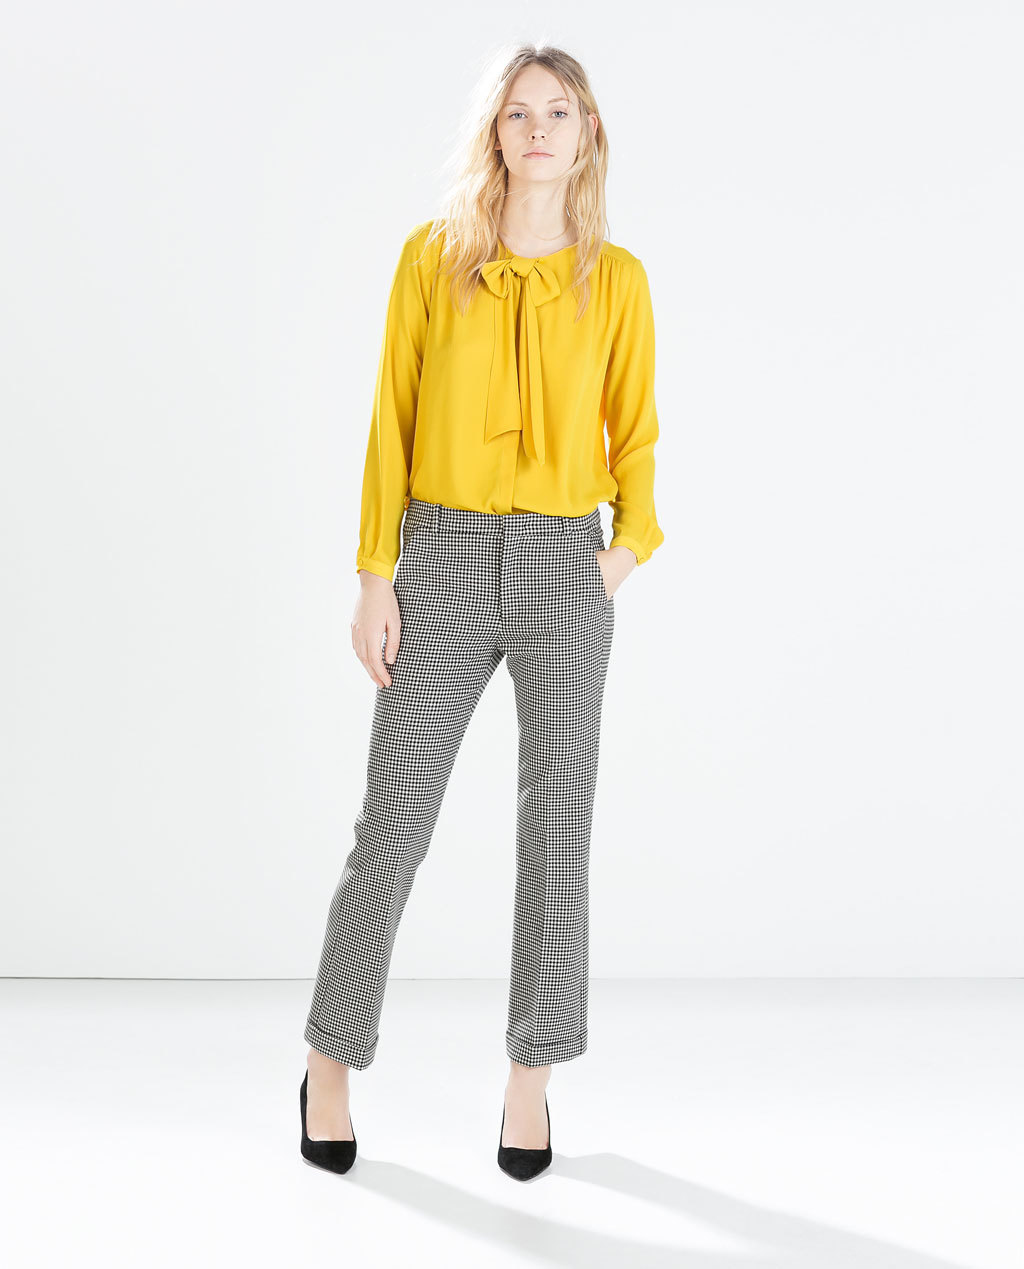 Shirt With Bow Collar - pattern: plain; style: shirt; neckline: pussy bow; predominant colour: mustard; occasions: casual, work, creative work; length: standard; fibres: polyester/polyamide - 100%; fit: straight cut; sleeve length: long sleeve; sleeve style: standard; texture group: sheer fabrics/chiffon/organza etc.; season: a/w 2014